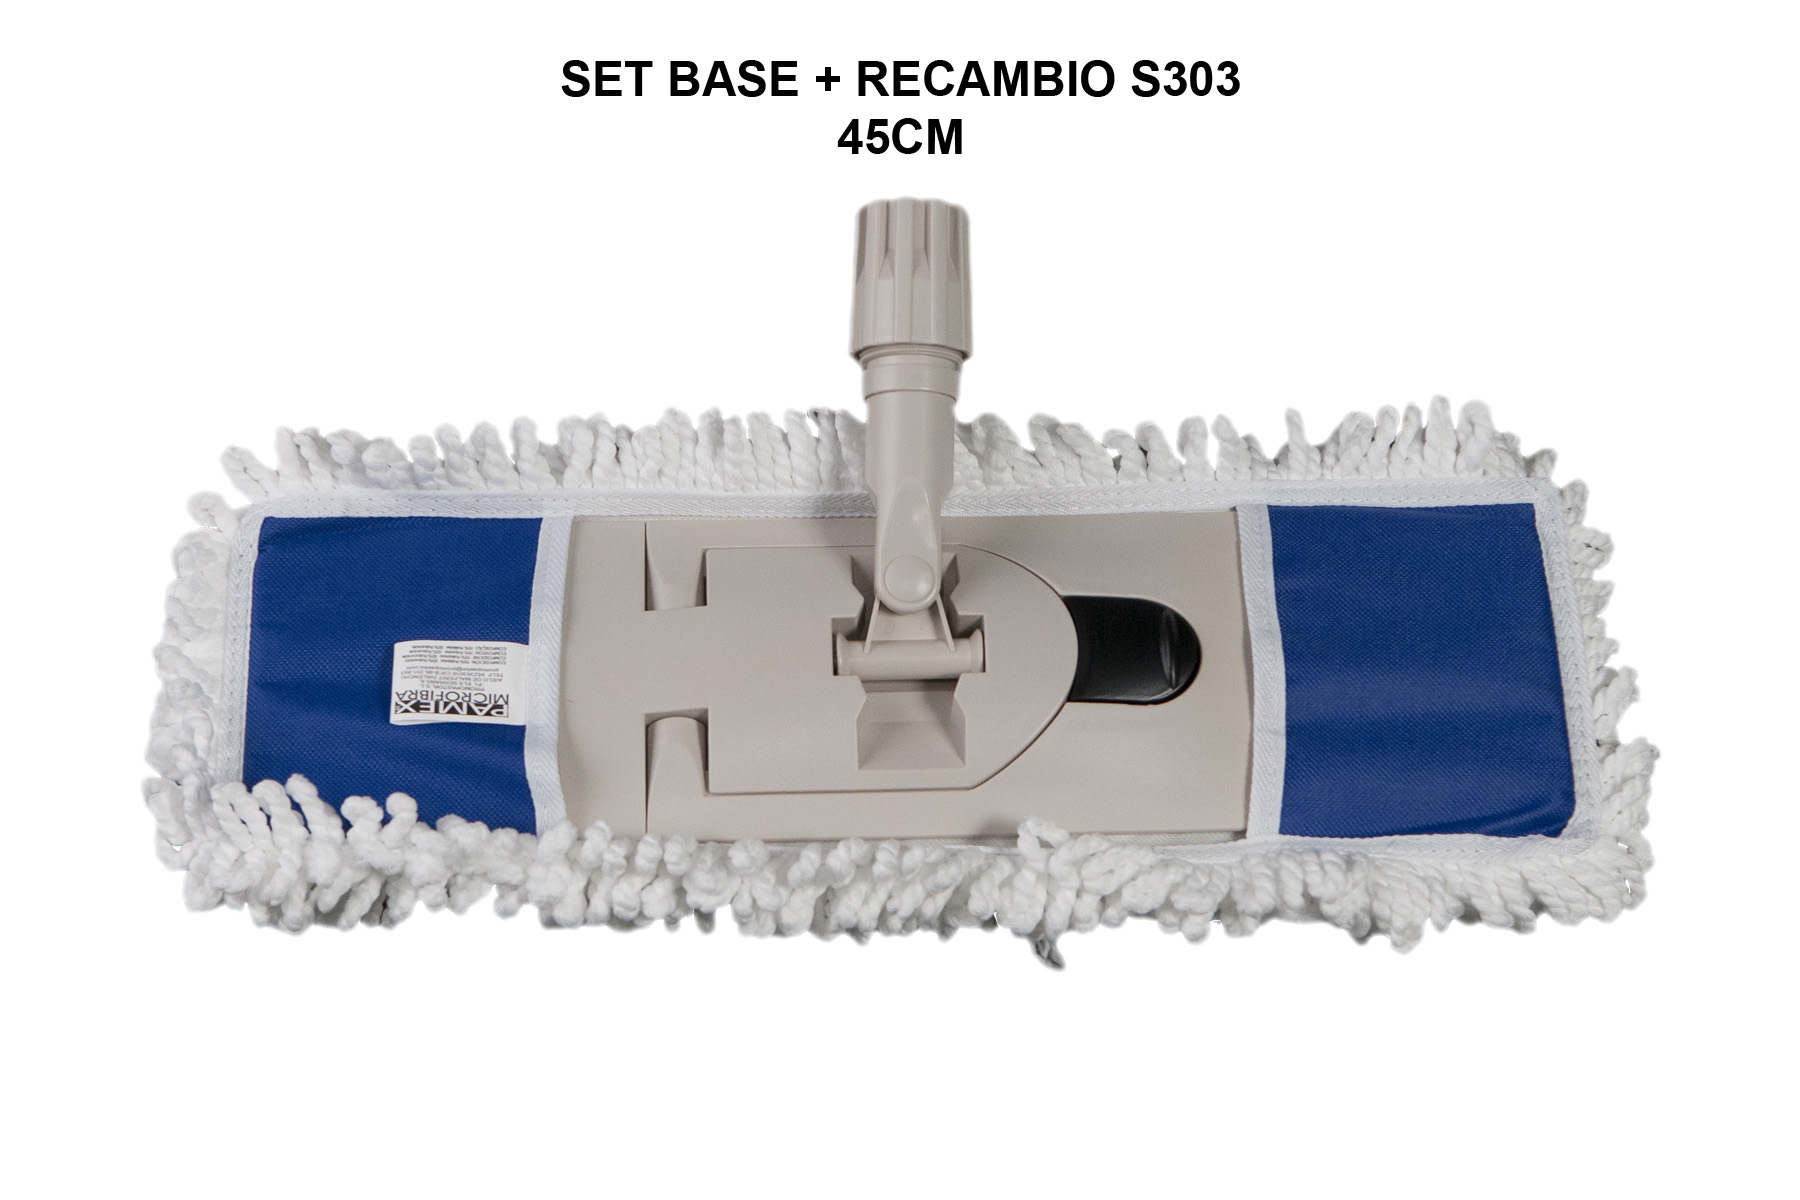 SET BASE + RECAMBIO S303 45CM